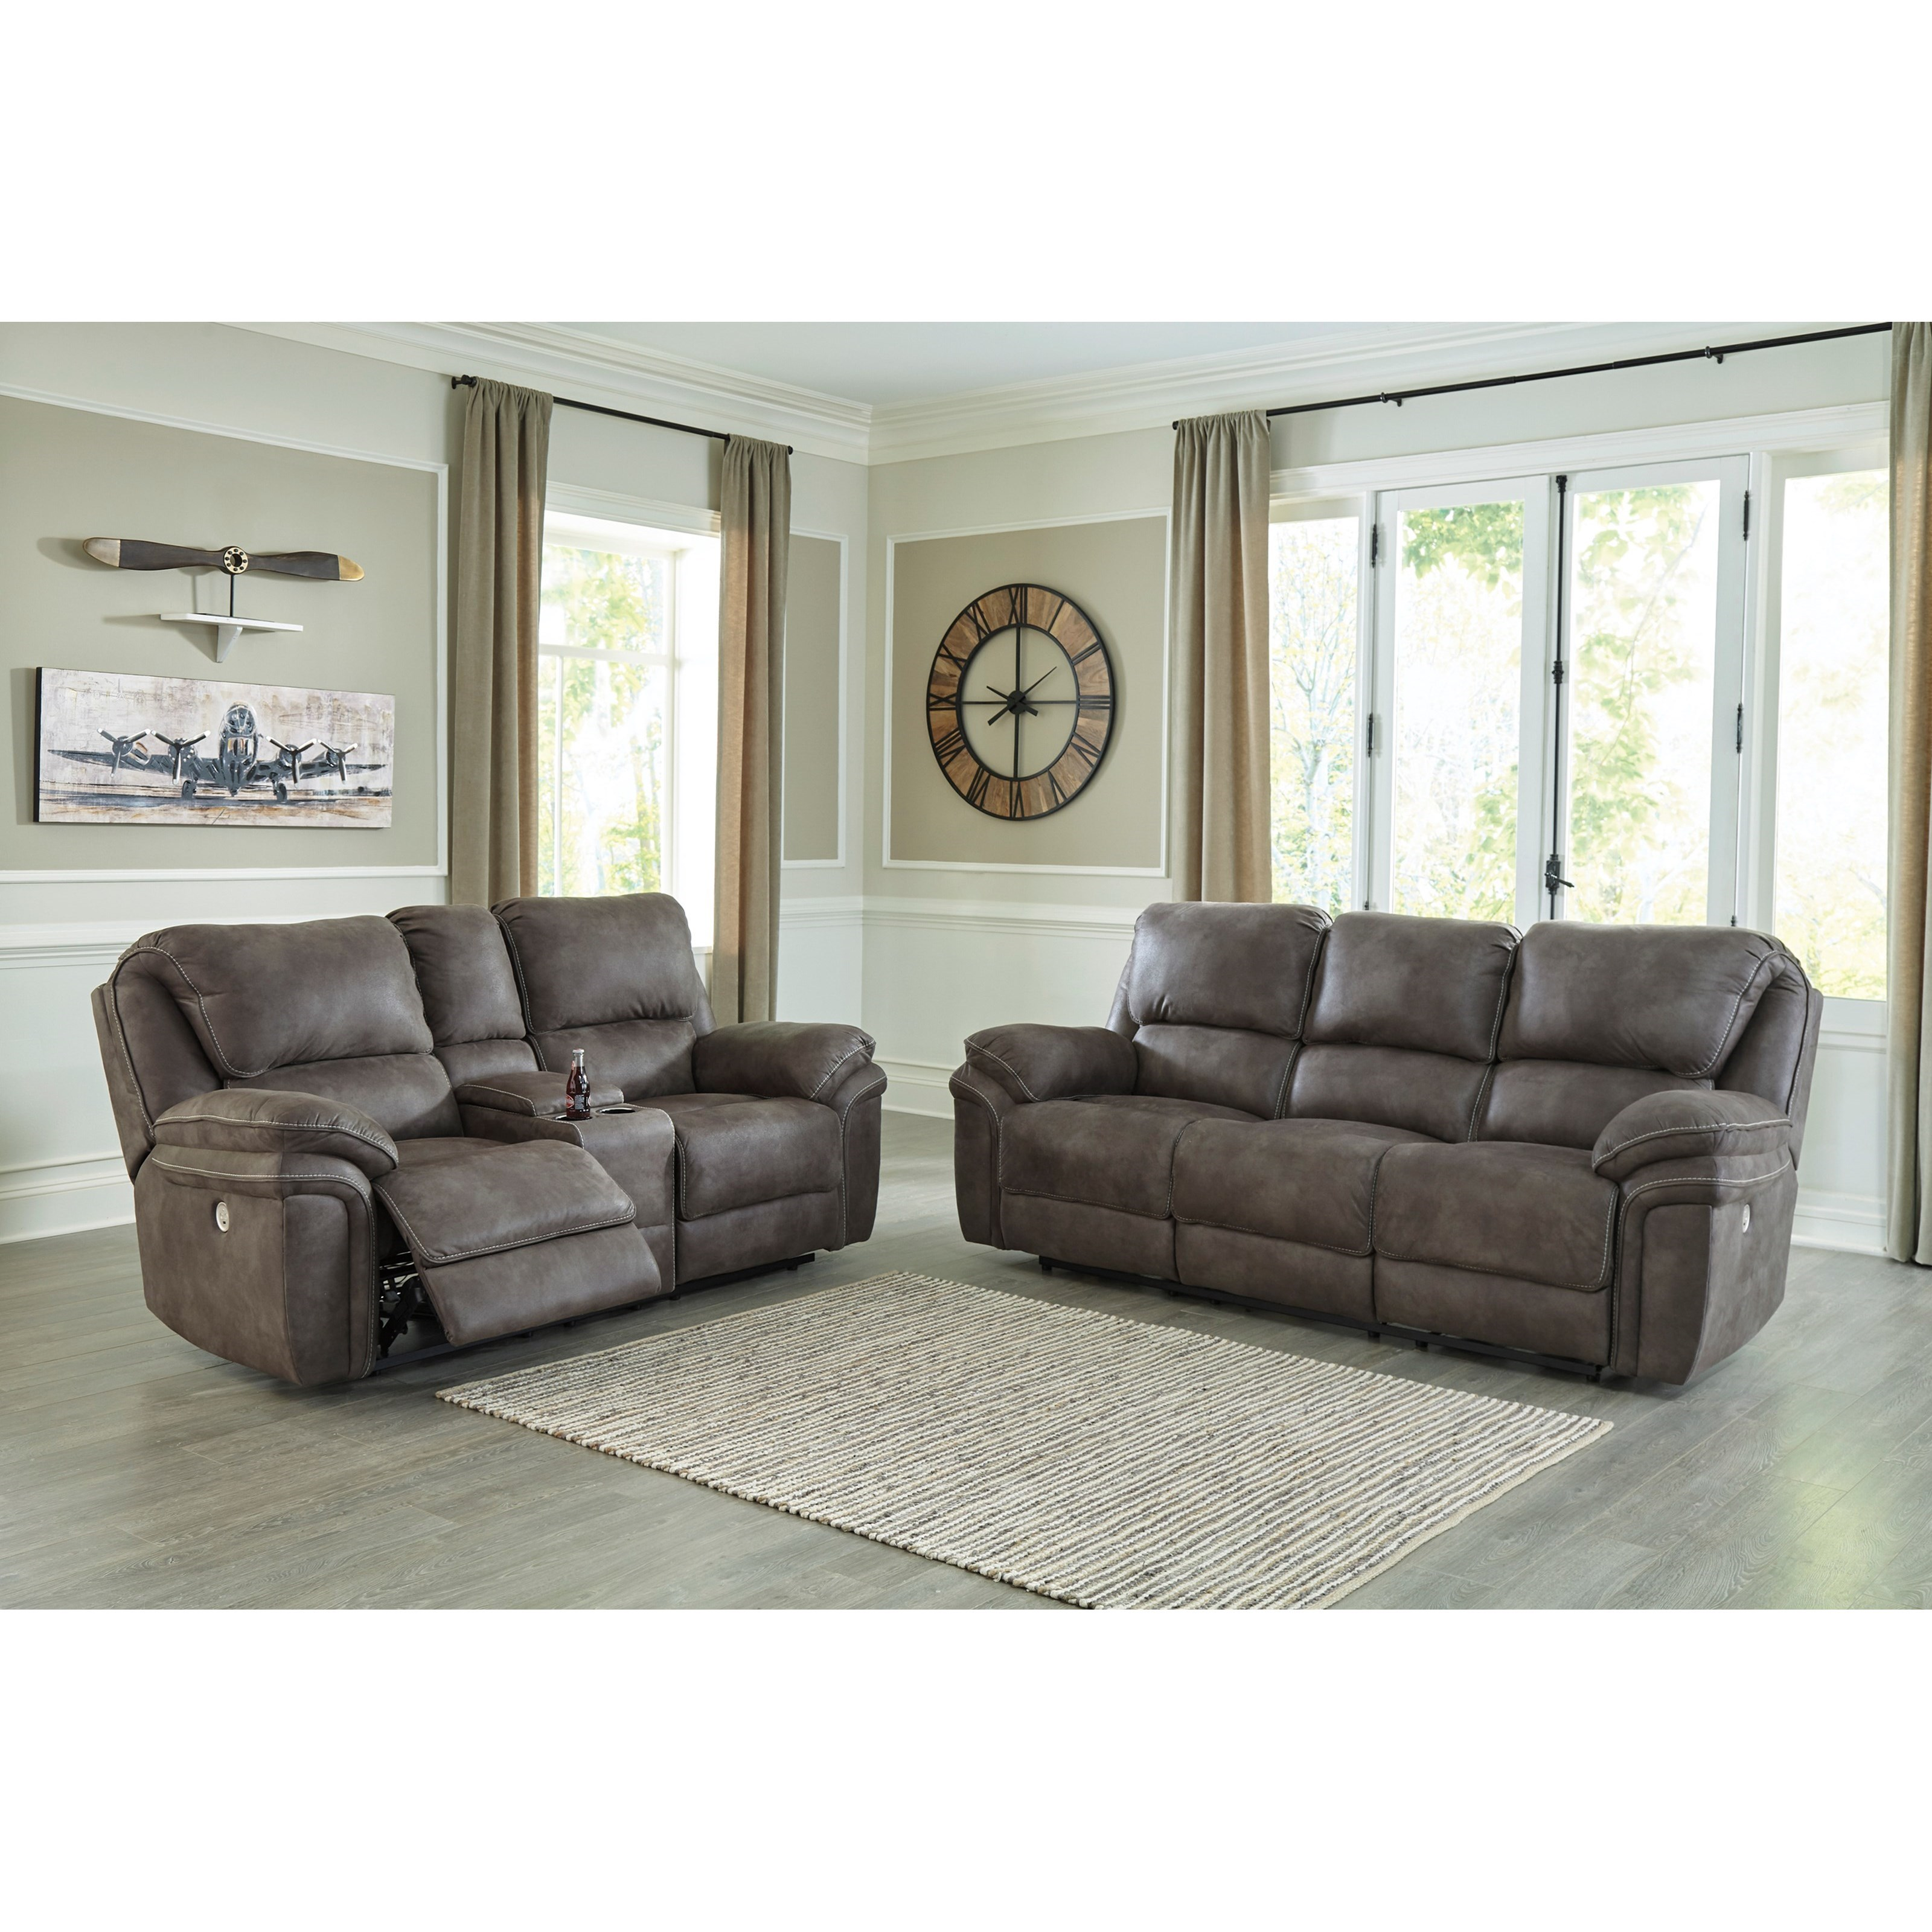 Trementon Power Reclining Living Room Group by Benchcraft at Household Furniture